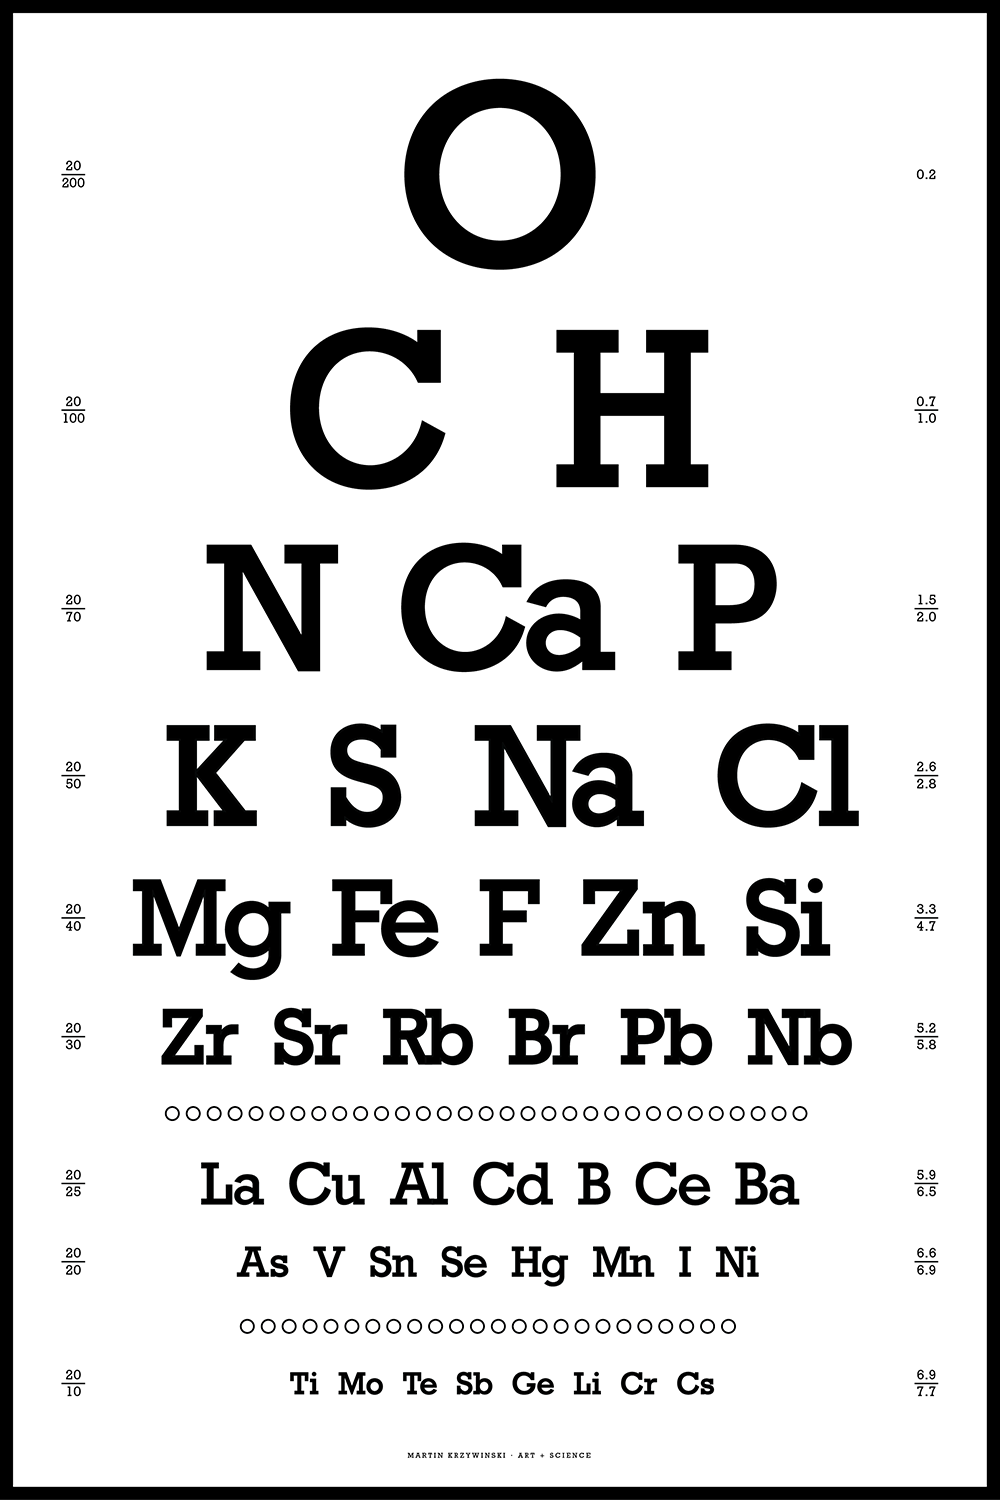 snellen-chart-elements-body.png